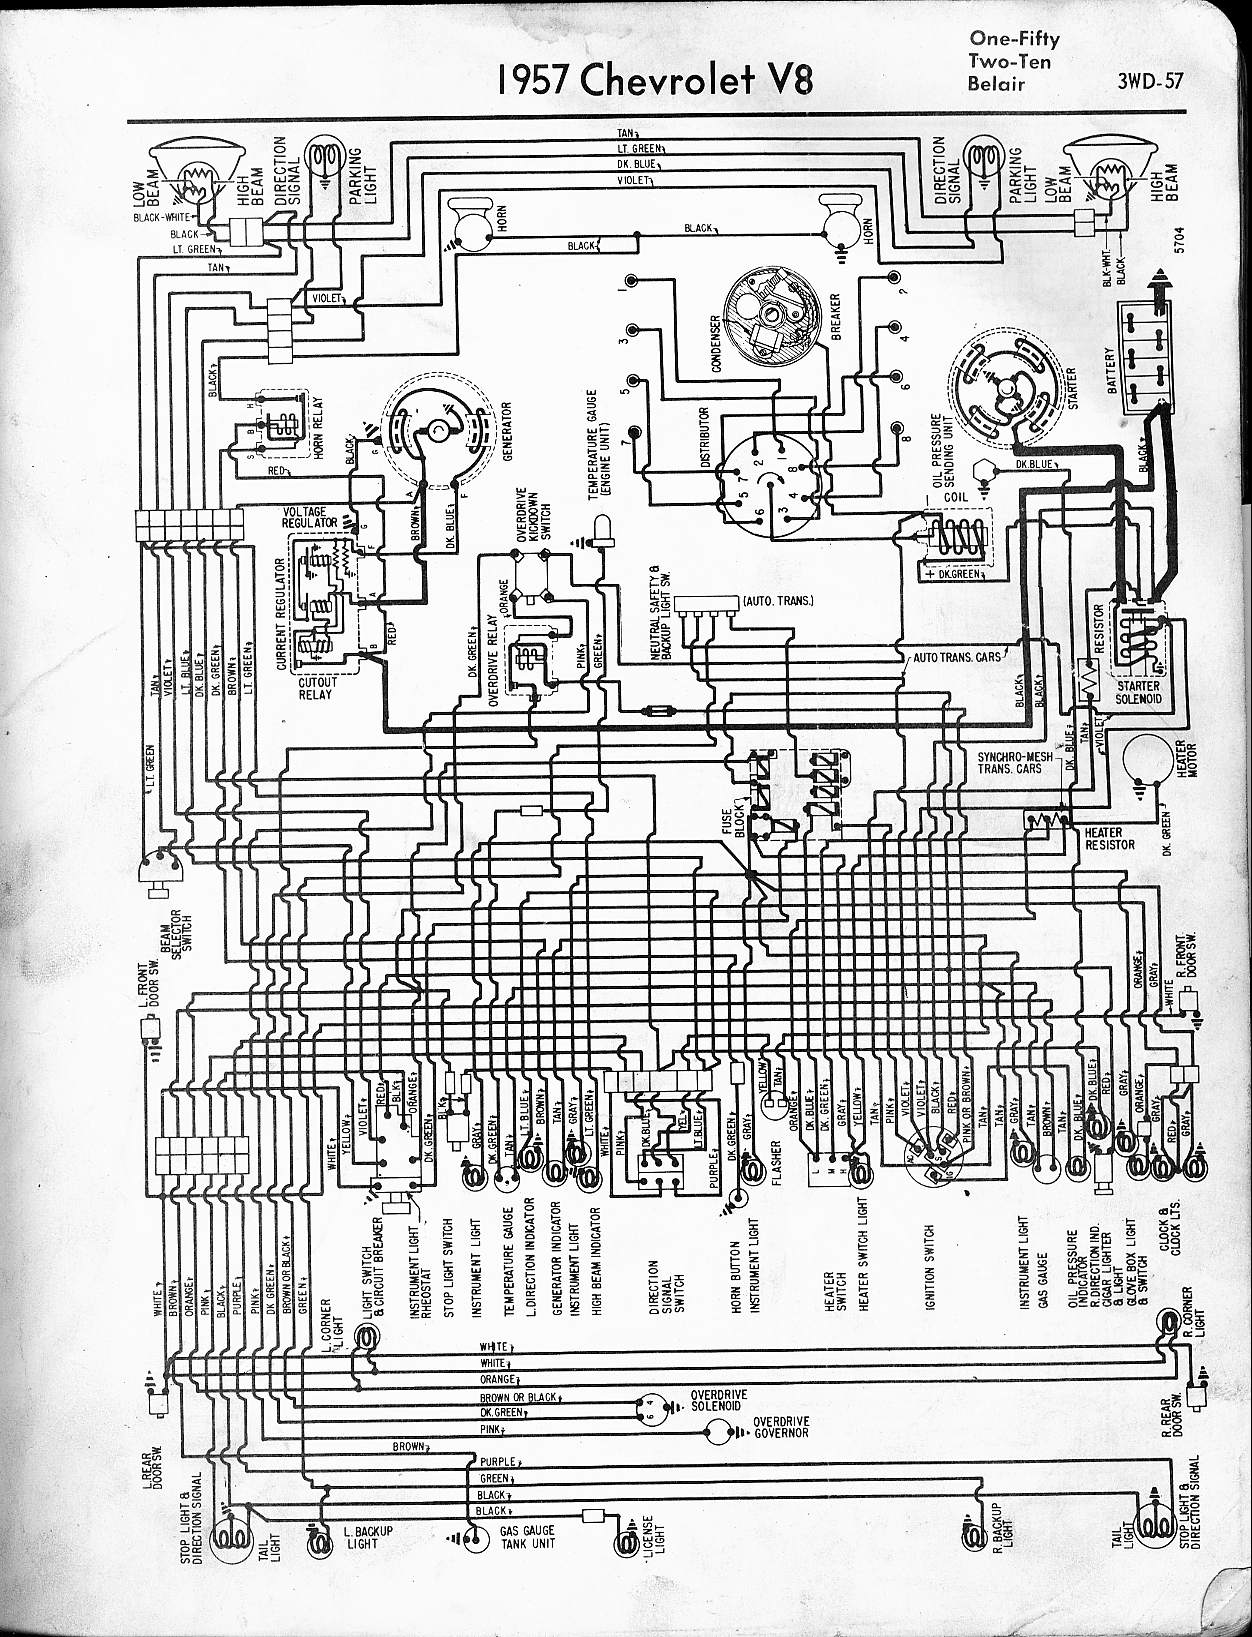 68 Chevy Tail Light Wiring Harness Diagram Will Be A Thing 2006 Malibu 55 Content Resource Of Rh Uberstuff Co